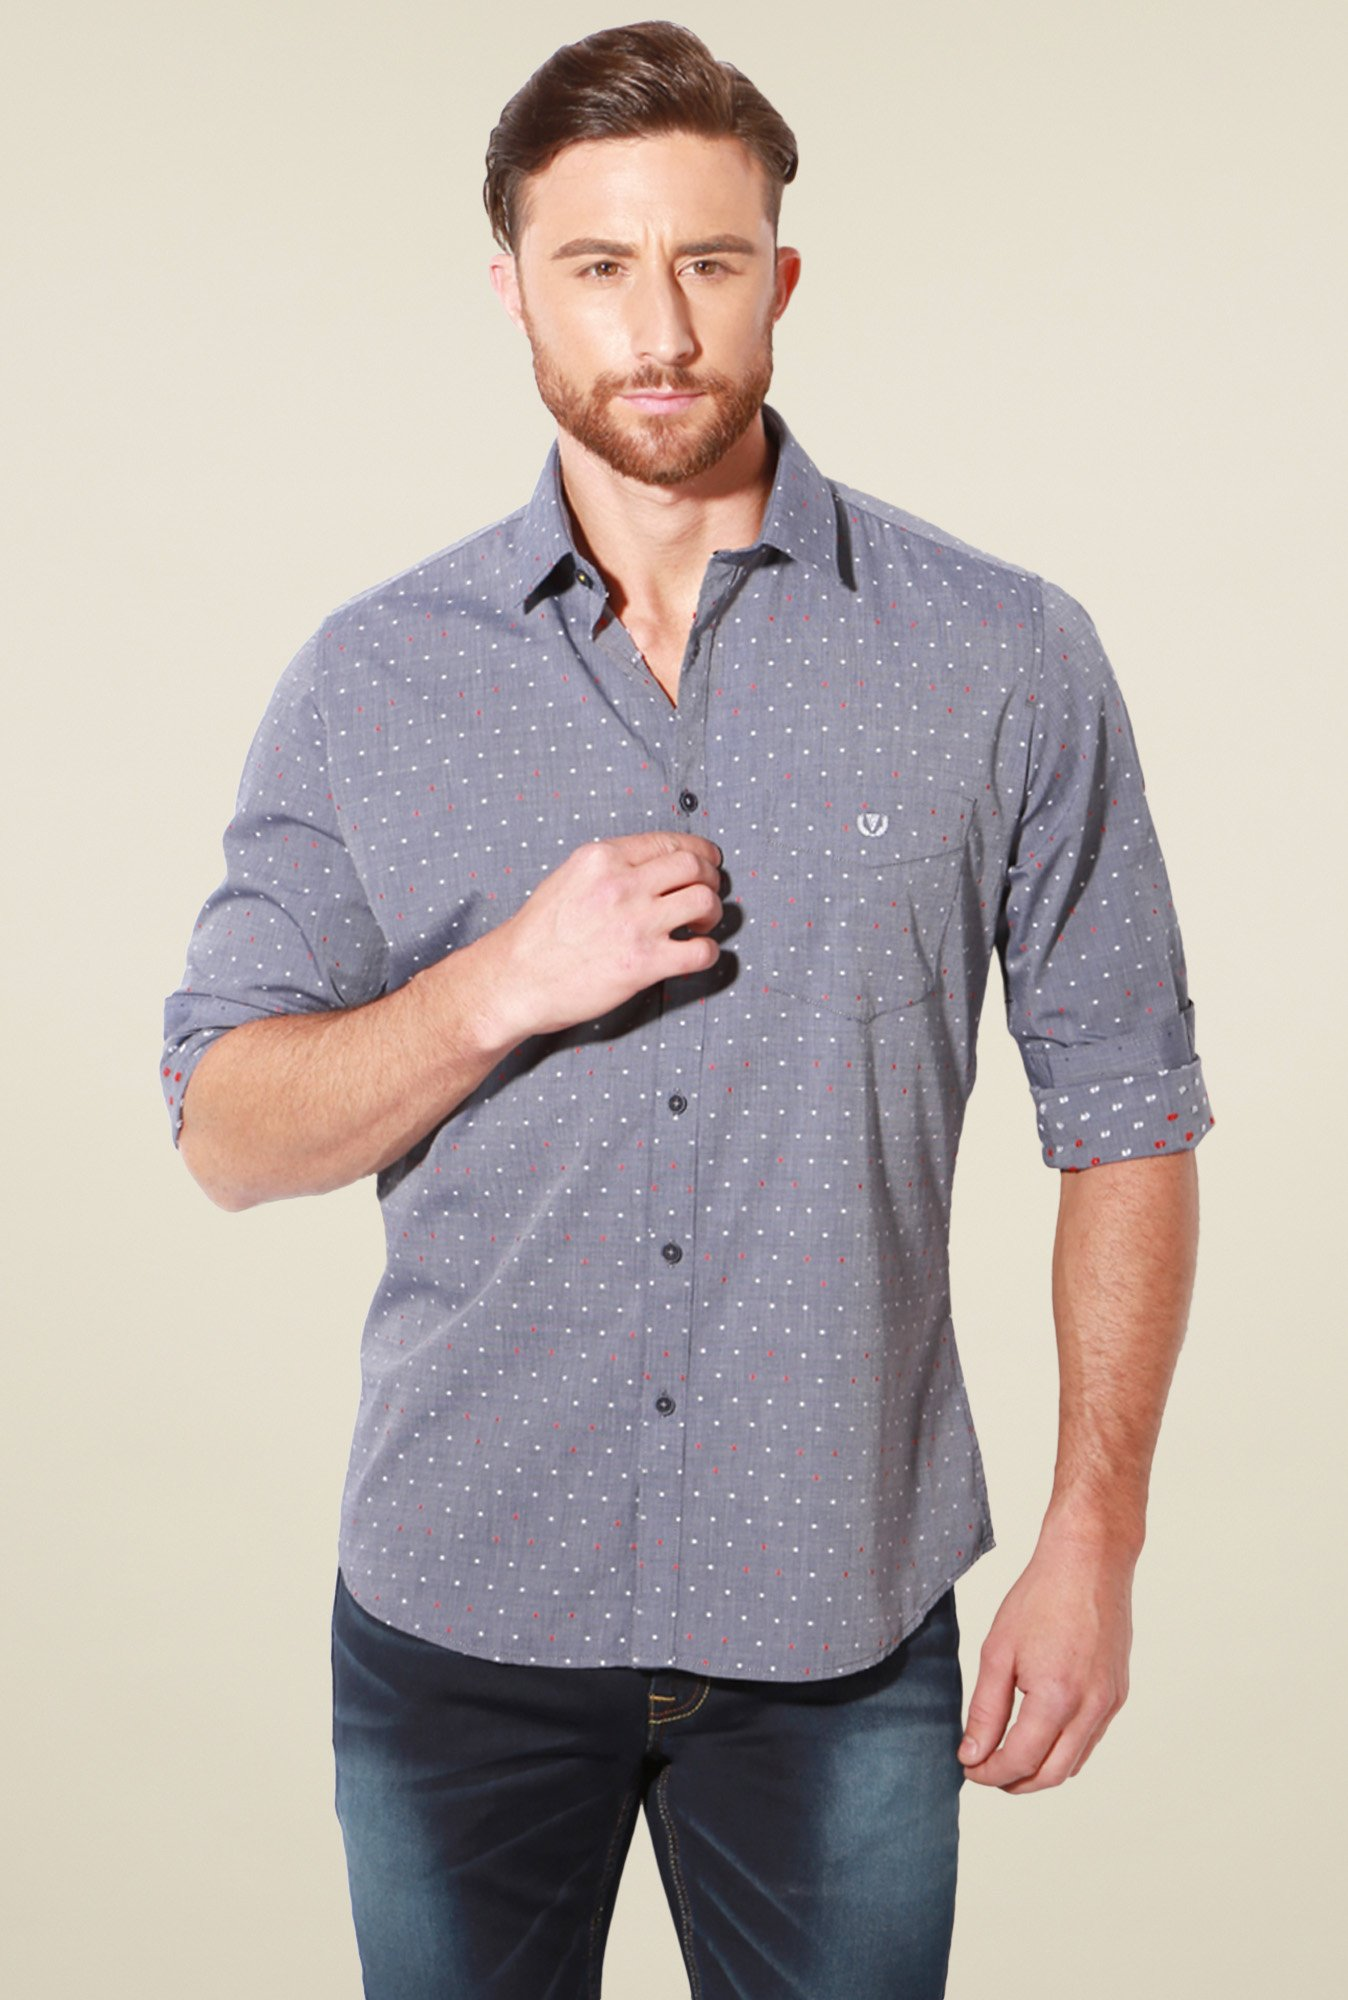 Van Heusen Slate Grey Slim Fit Shirt